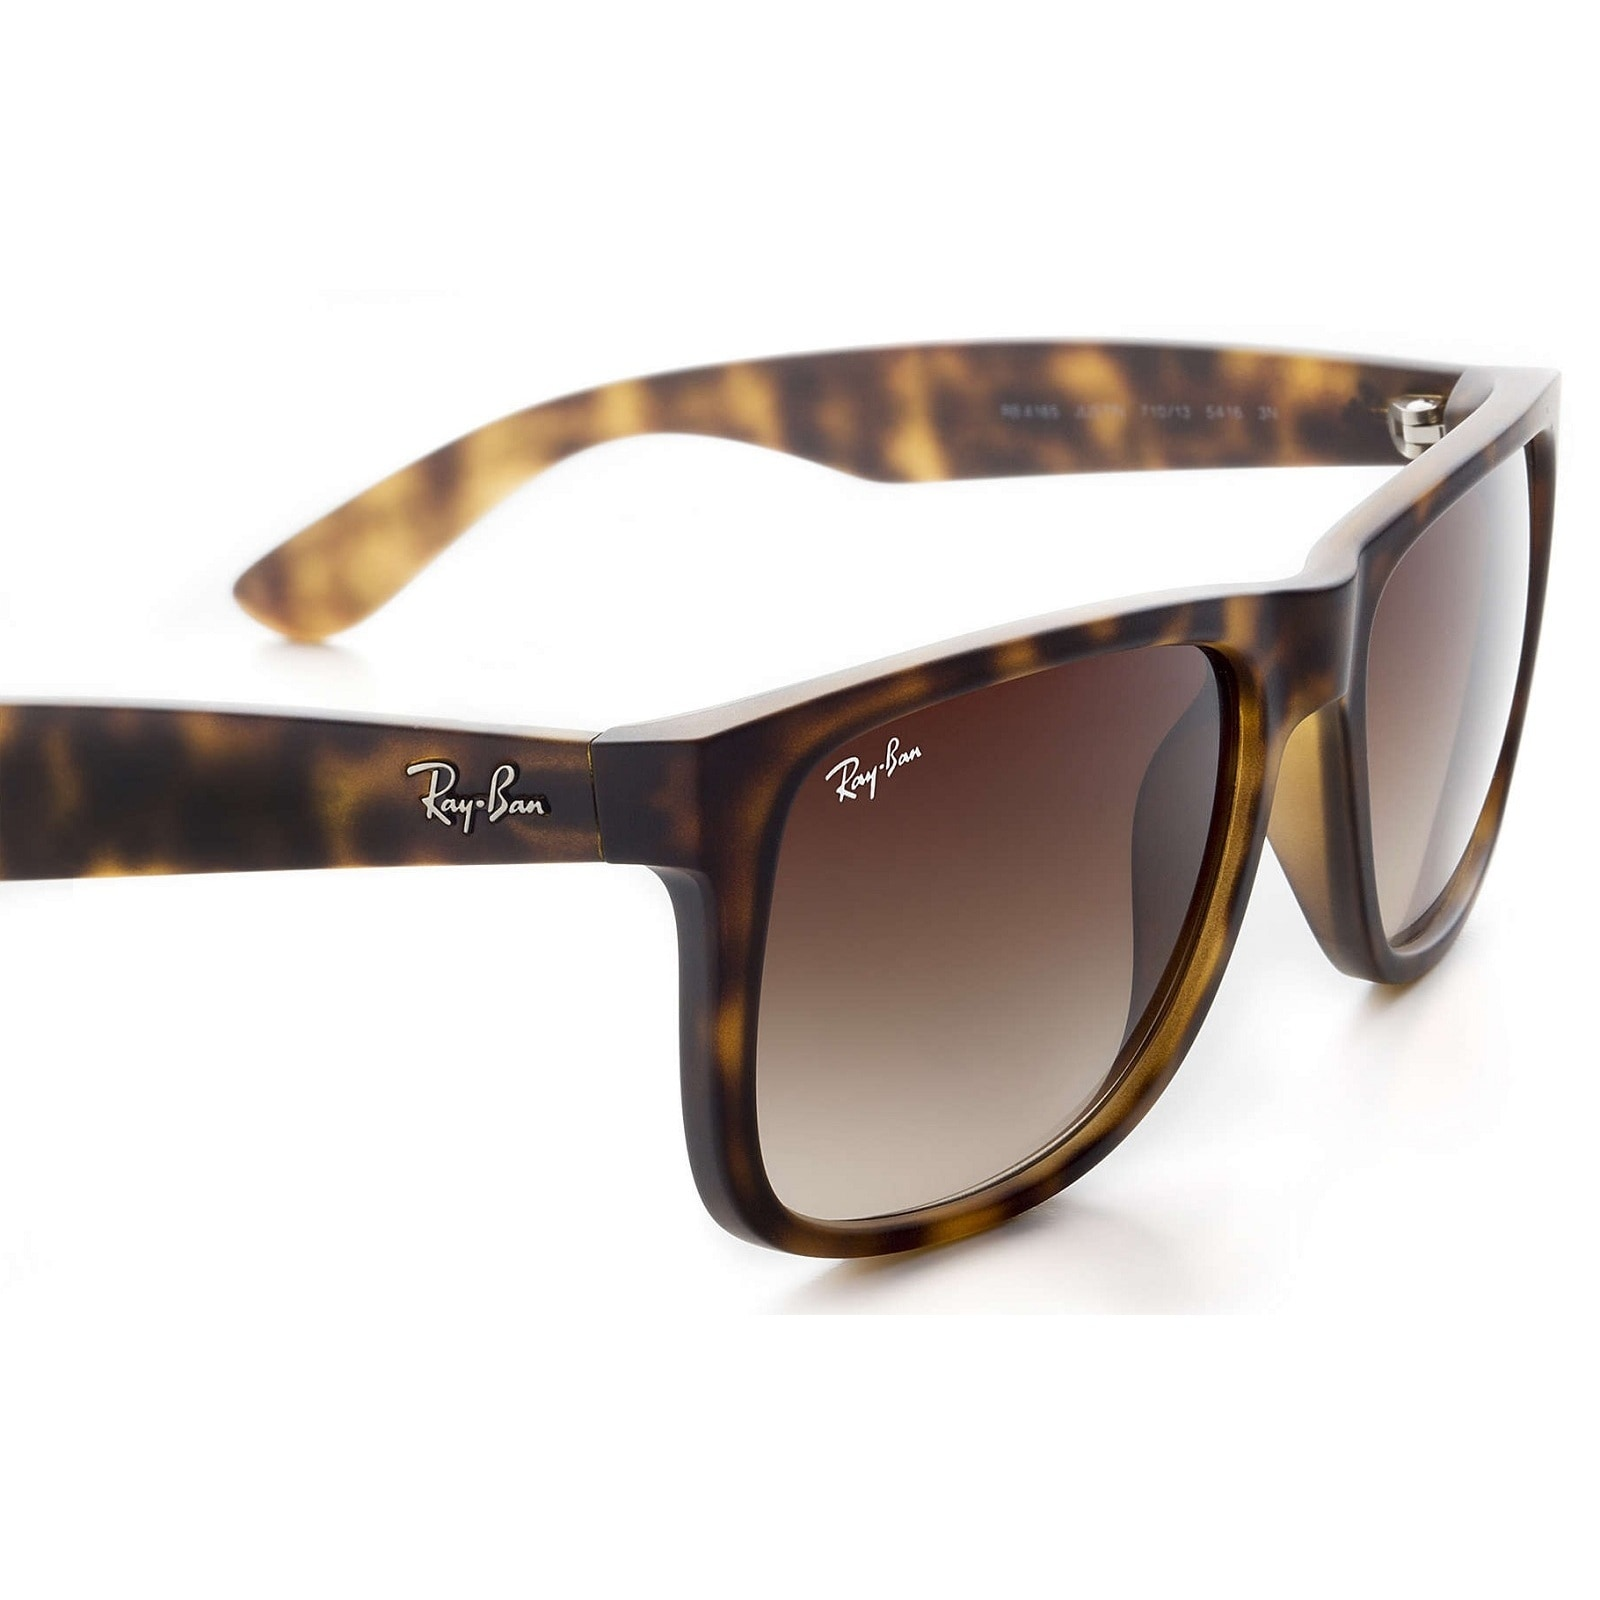 56d0d92a42 Shop Ray-Ban Justin RB4165 Men s Tortoise Frame Brown Gradient 55mm Lens  Sunglasses - Free Shipping Today - Overstock.com - 16944877